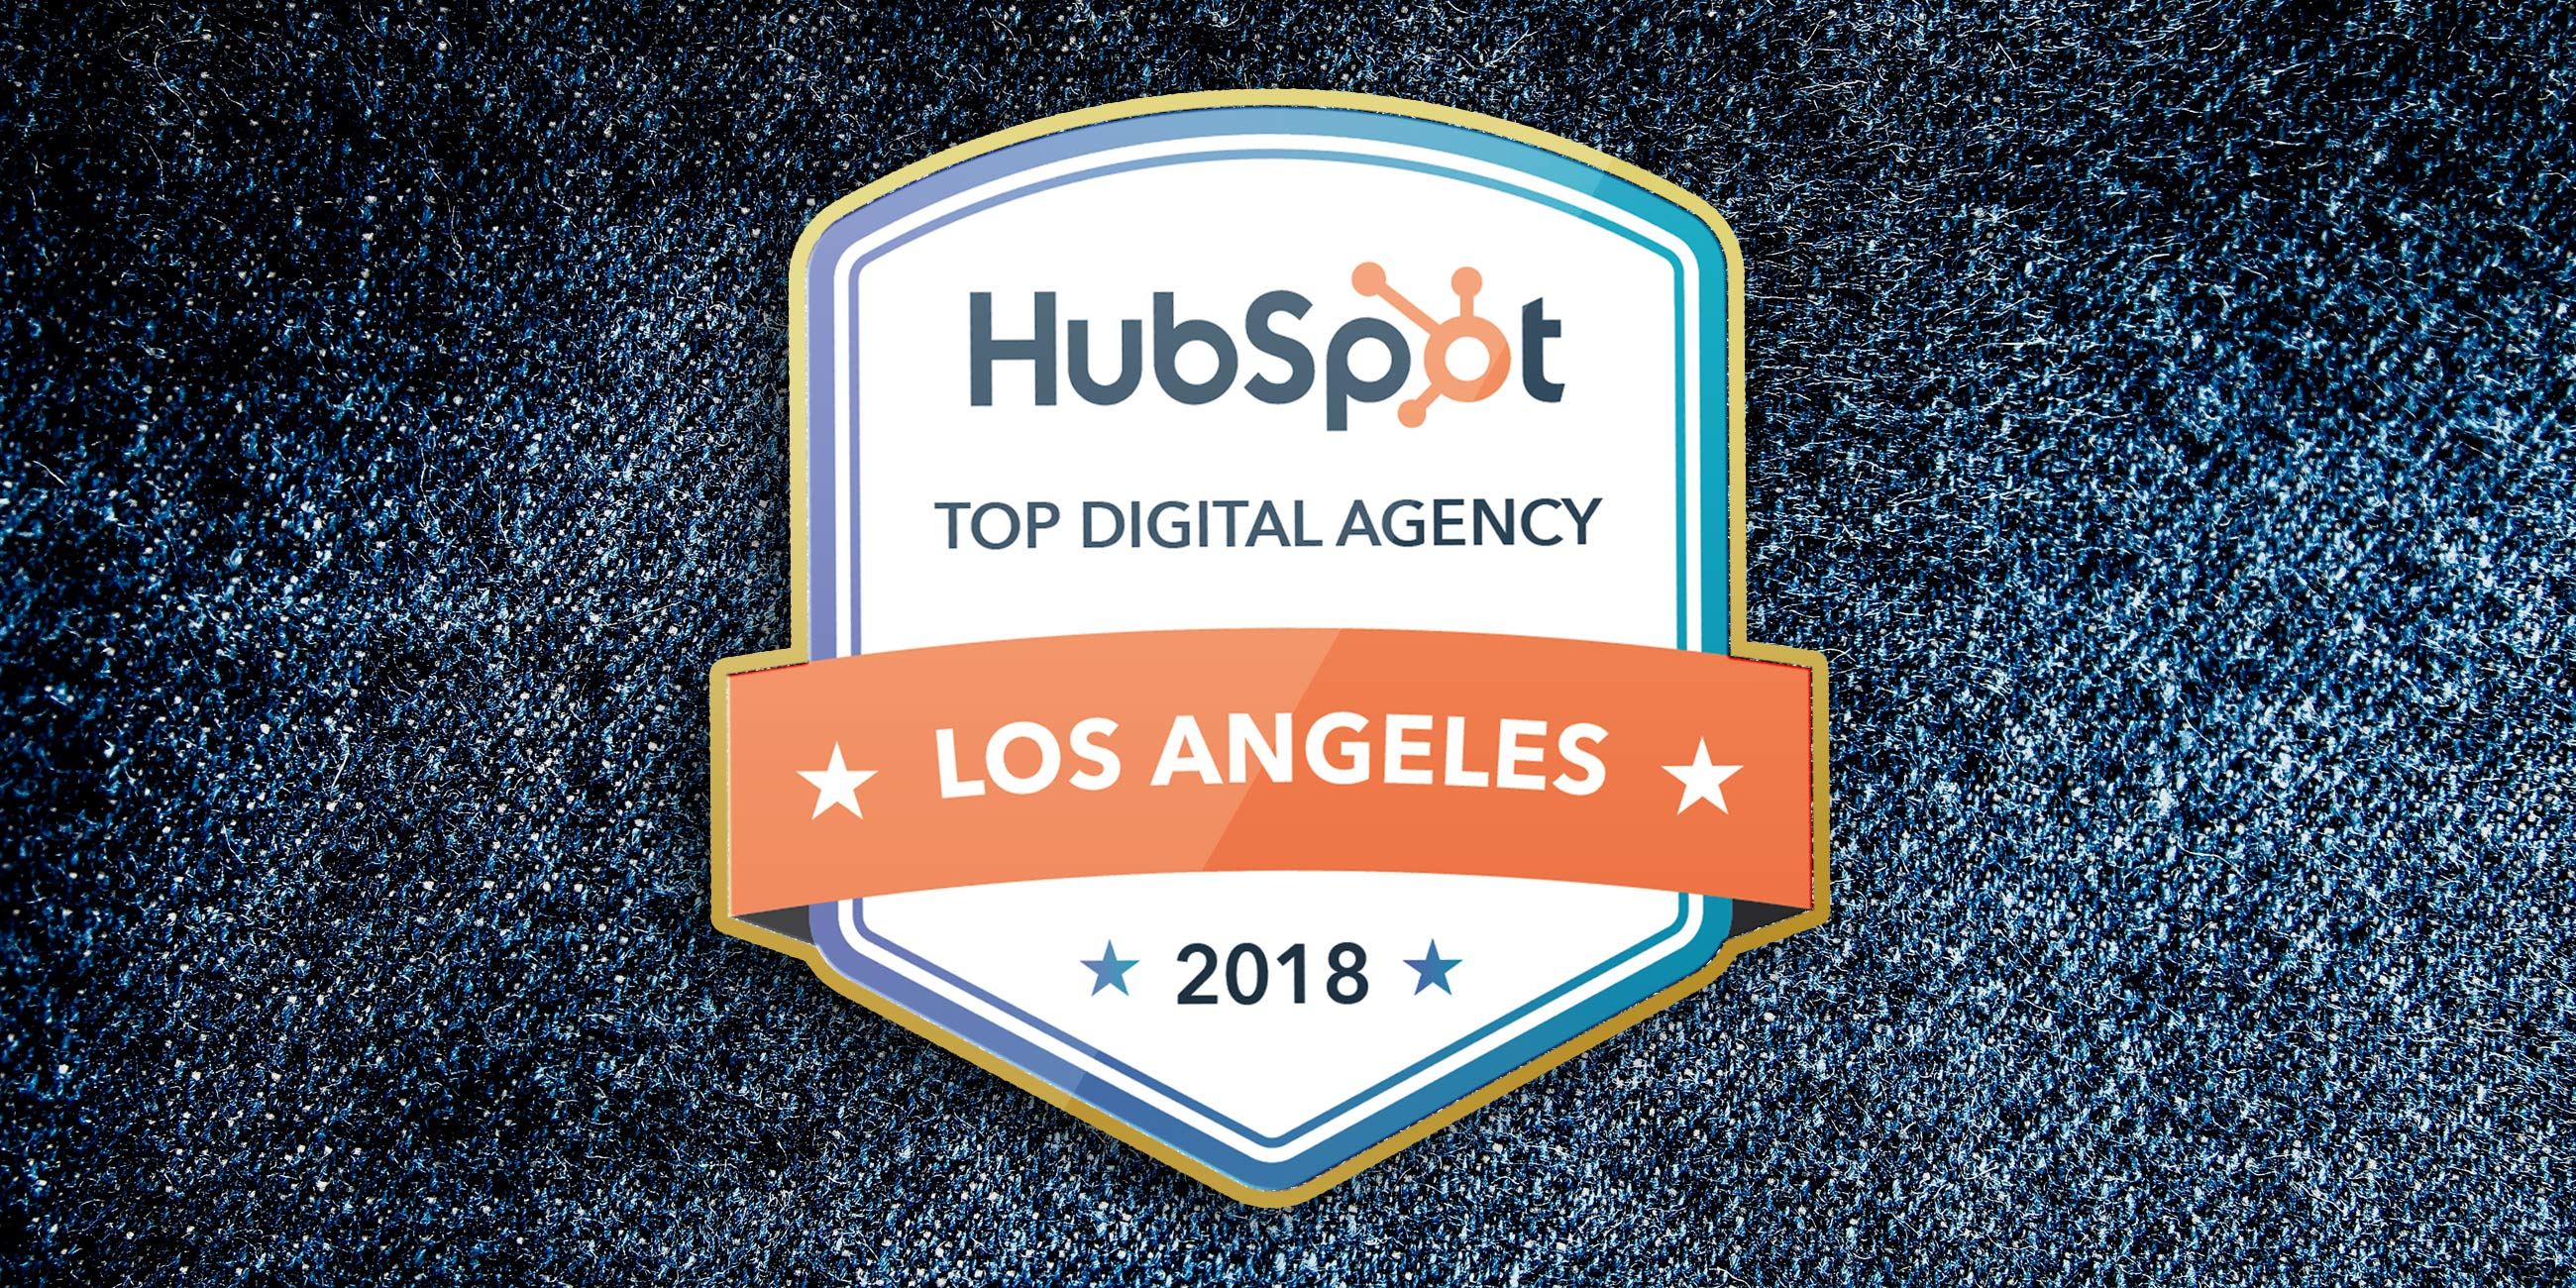 Bynder Group Hubspot Top Agency Los Angeles Photo by Thor Alvis on Unsplash